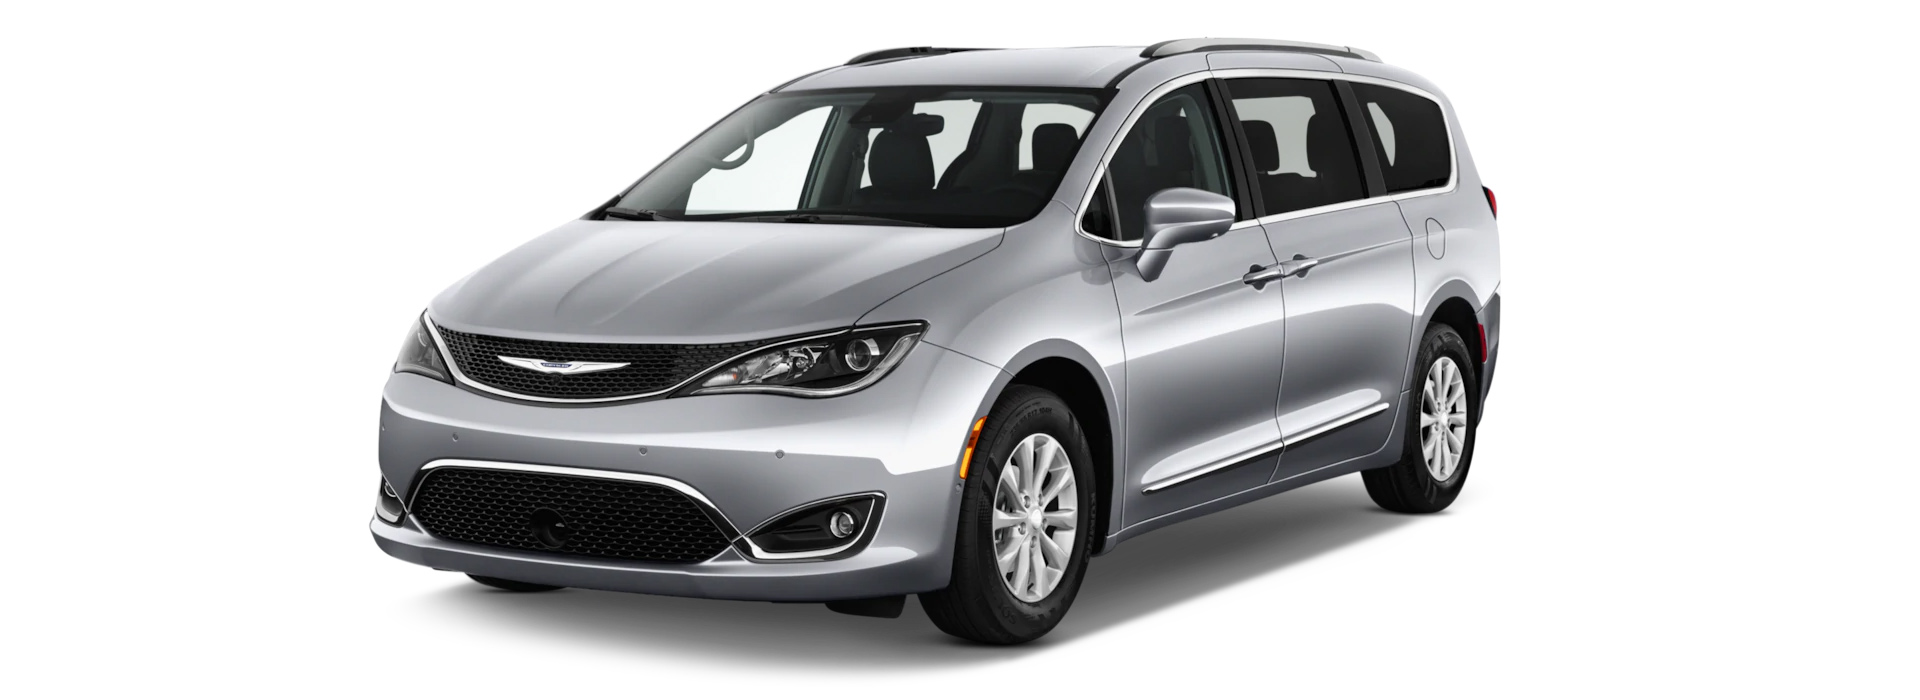 2019 Chrysler Pacifica for sale in Warrenton VA